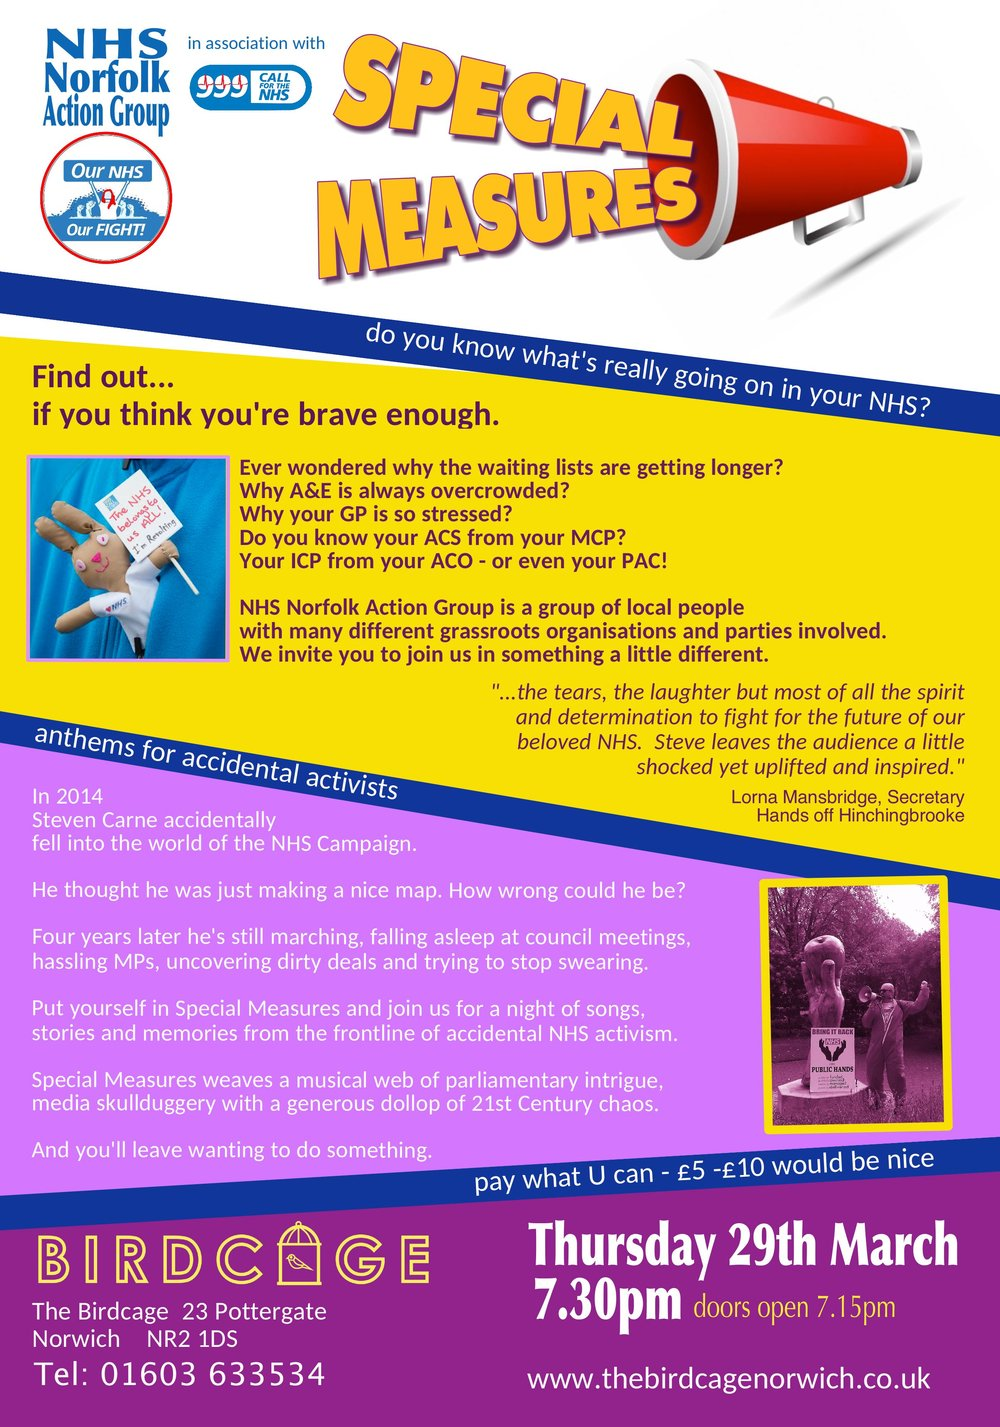 SM NORWICH BACK LEAFLET.jpeg